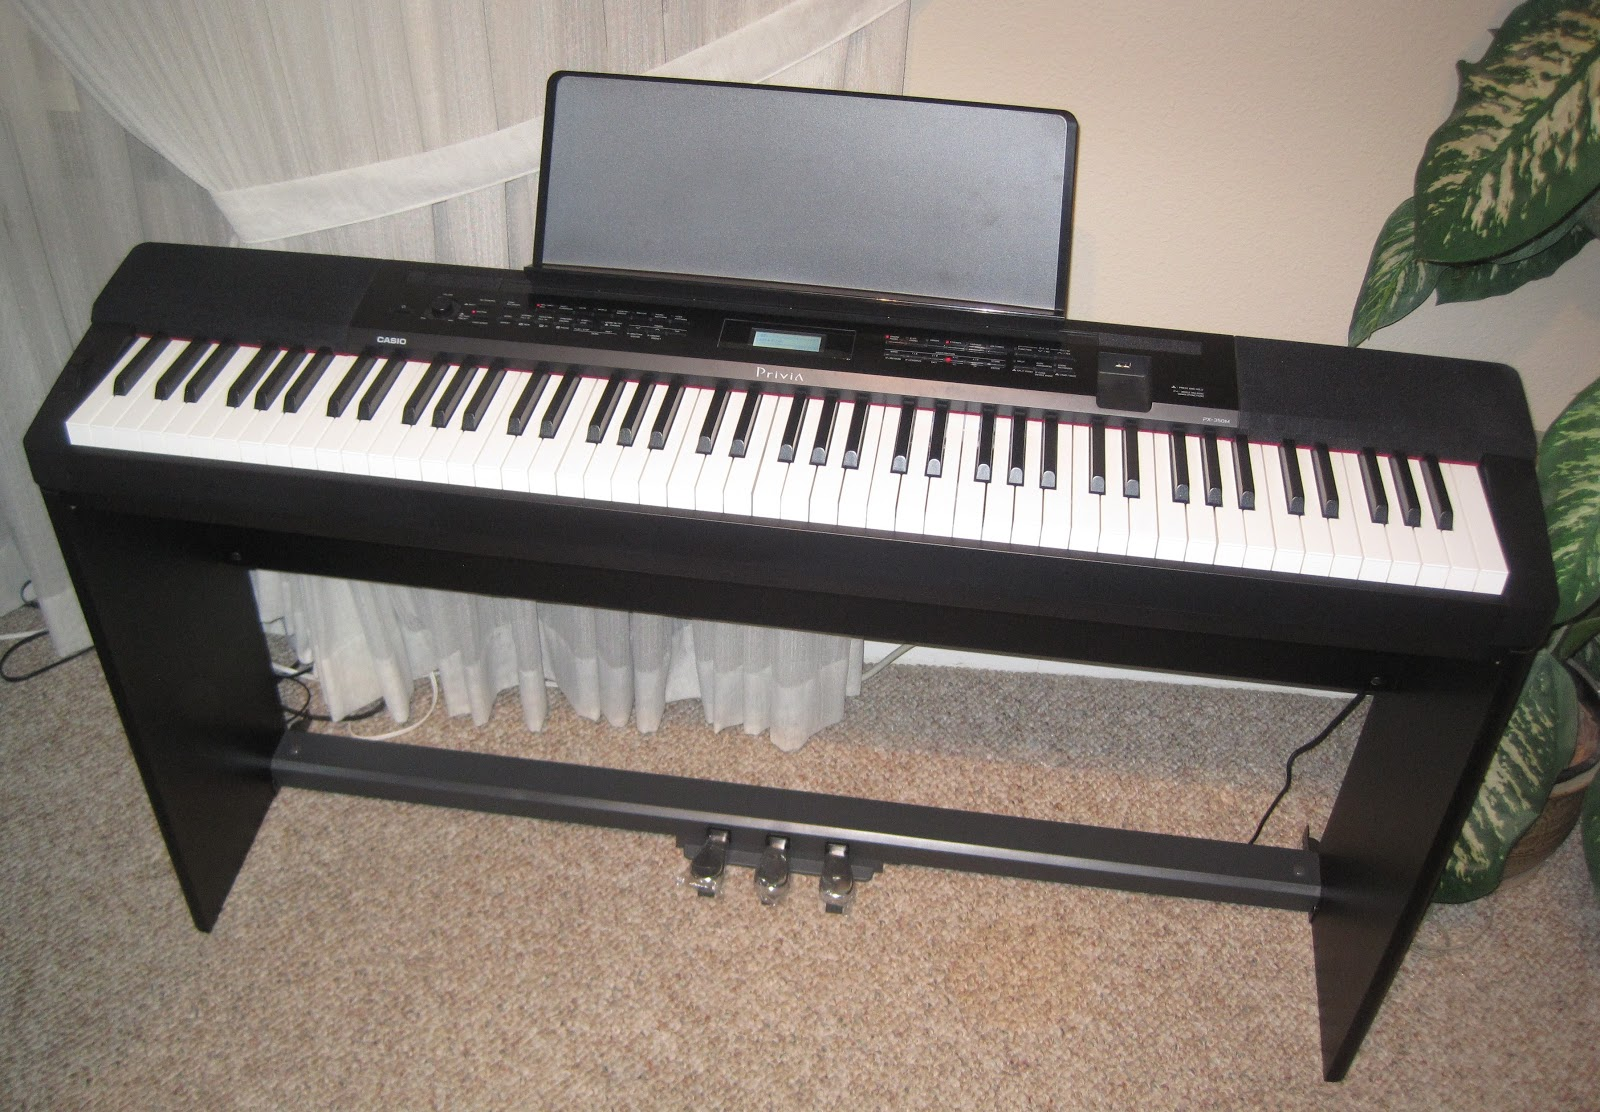 Az piano reviews review korg sp250 digital piano good for Korg or yamaha digital piano